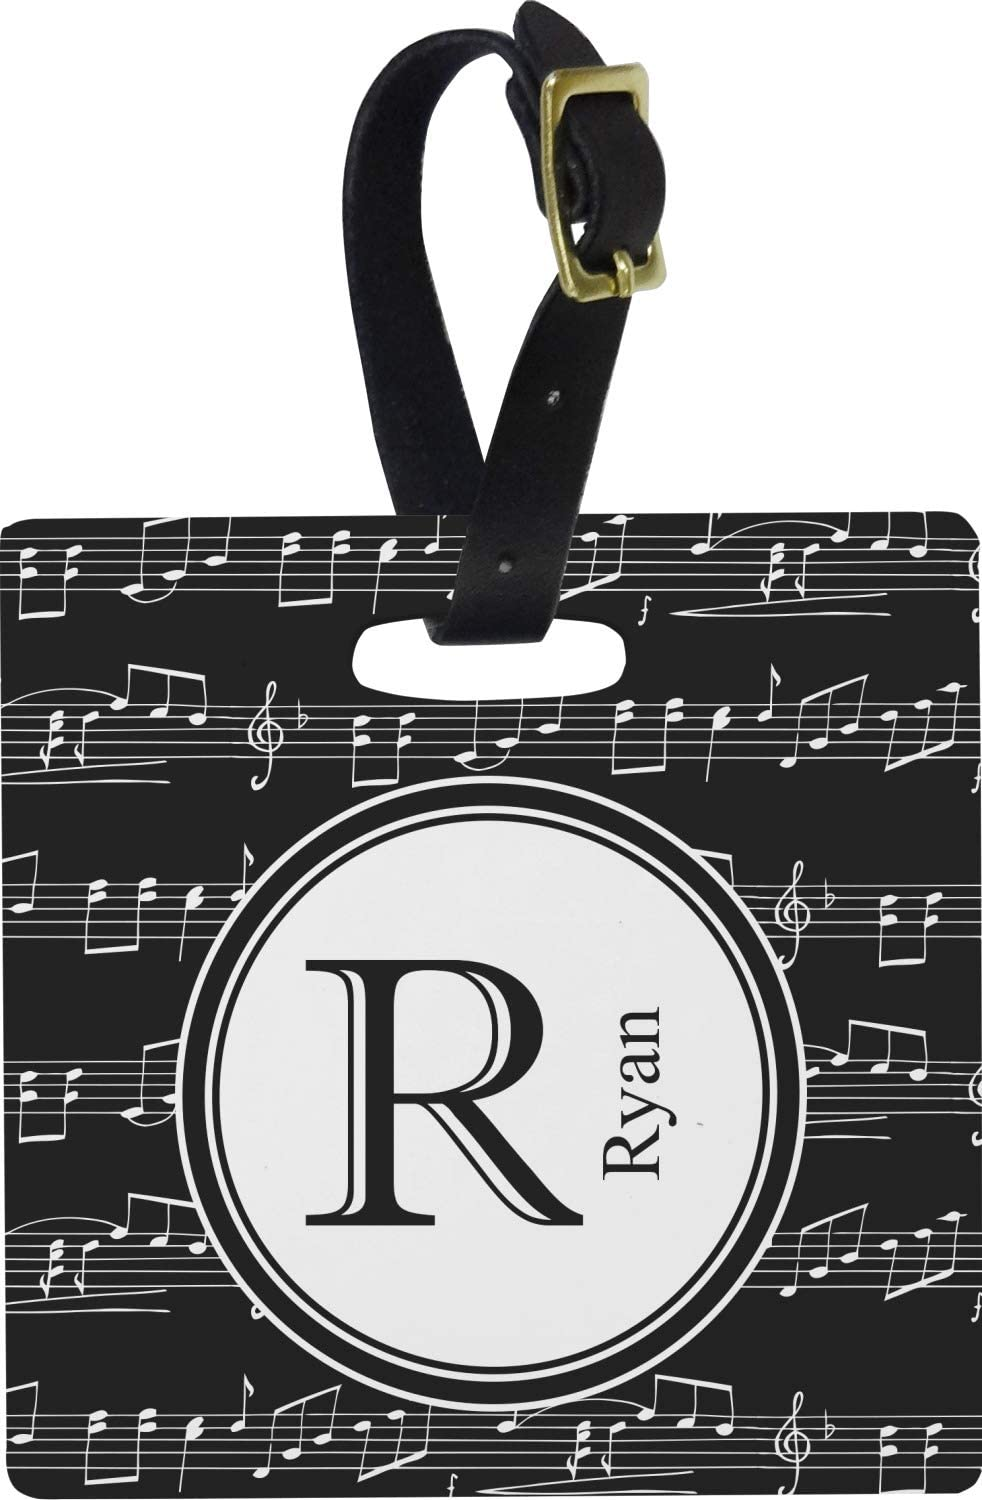 Luggage Suitcase Baggage Tag Music Collection 2